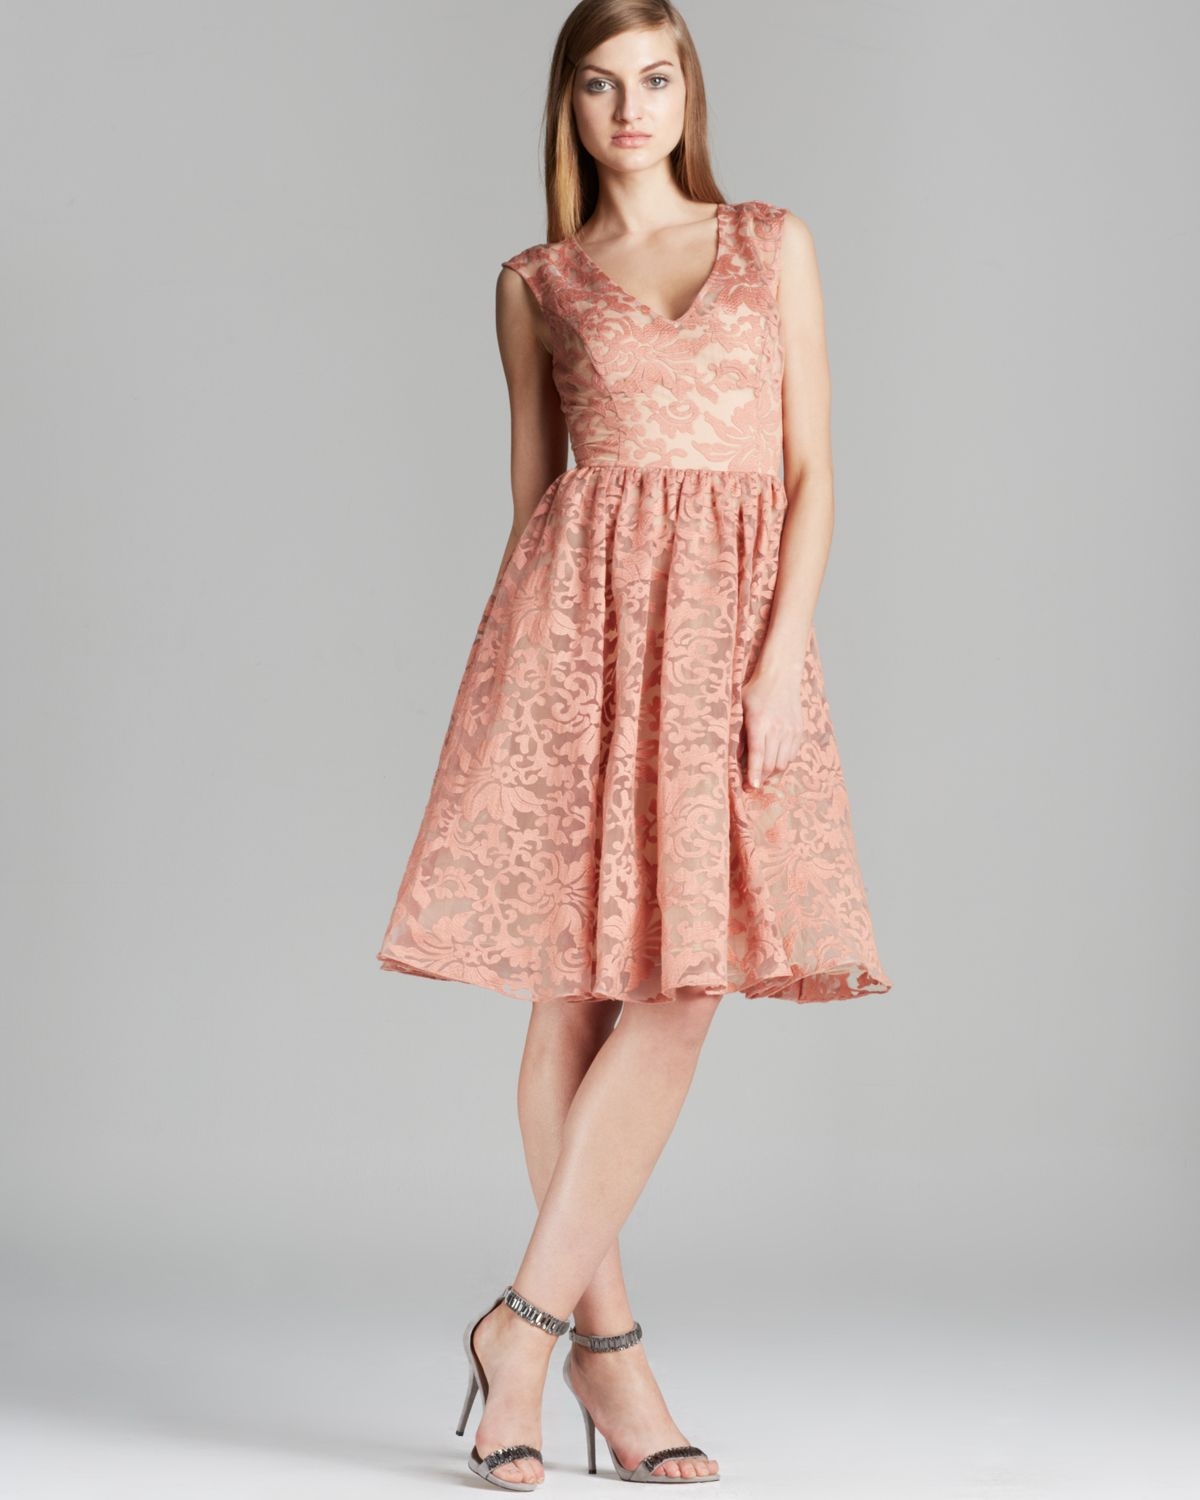 Tracy Reese Dress Dolce Vita Embroidered Organza Lace Fit